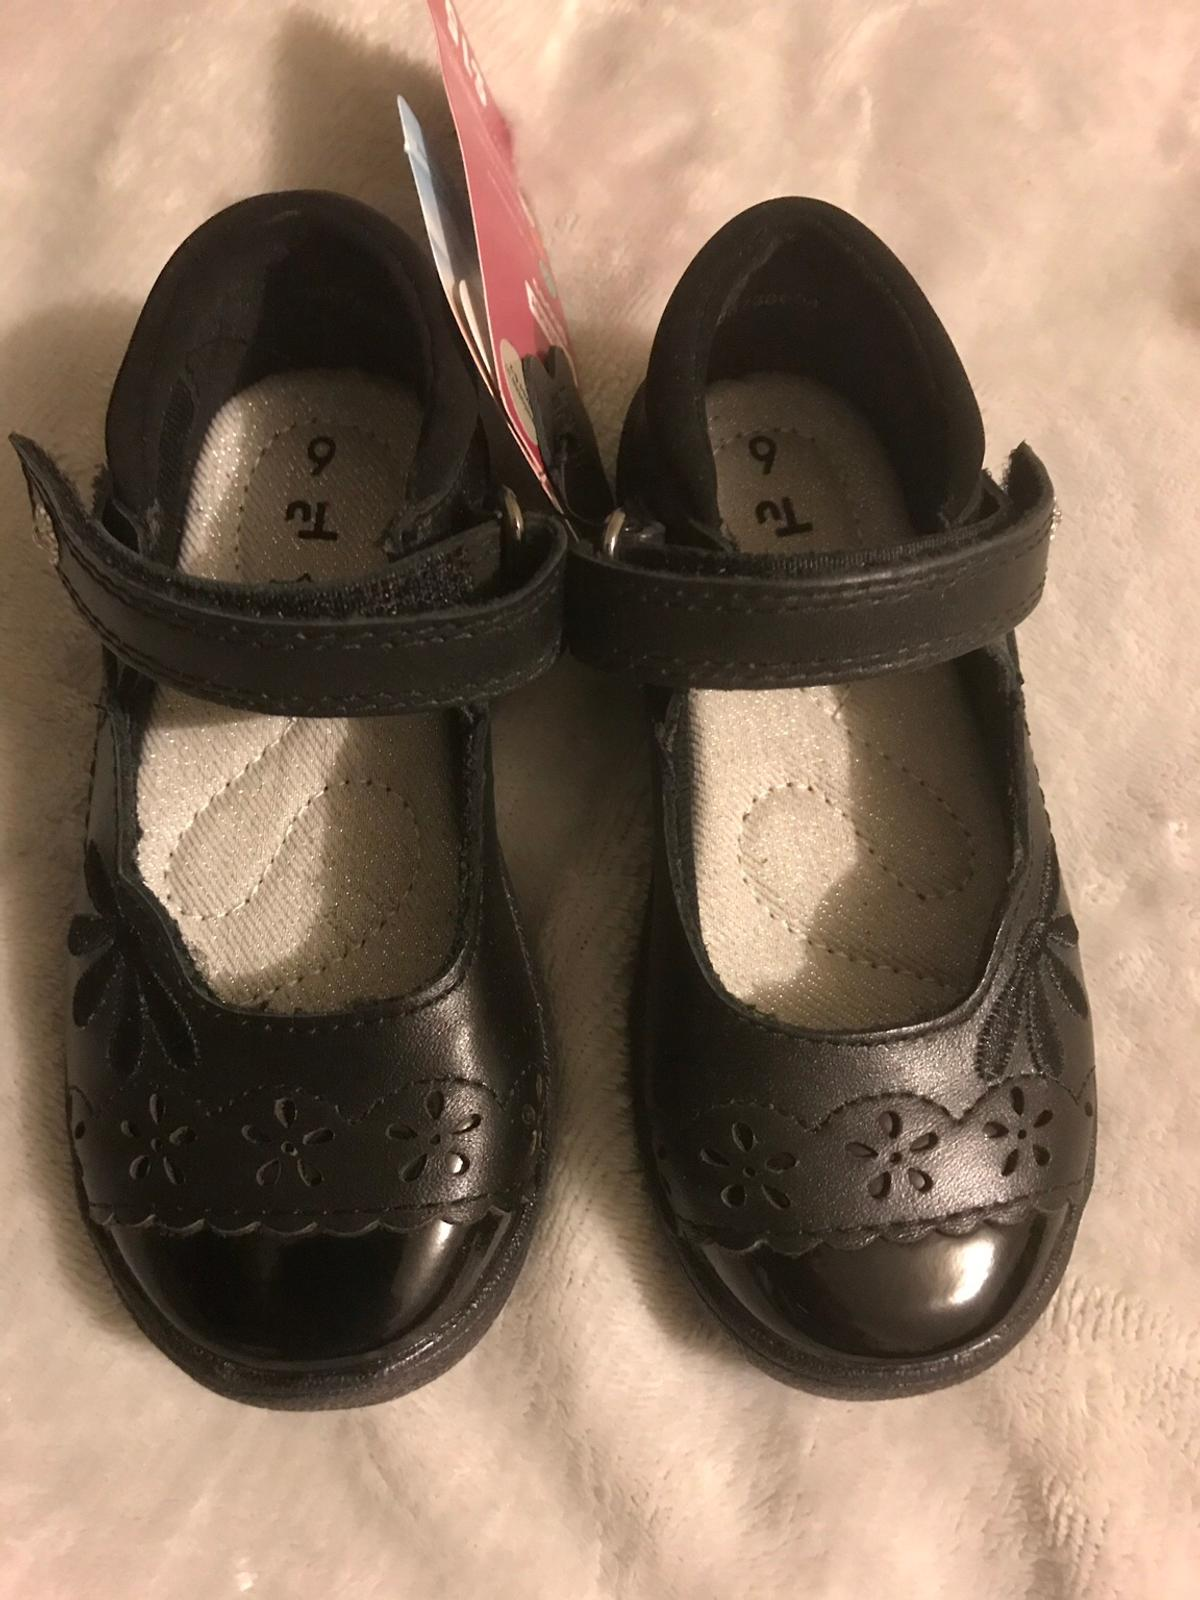 Black real leather girls shoes, size 6, new with tags. Scruff resistant Memory foam lining Postage available at cost to buyer. Please message with any questions.